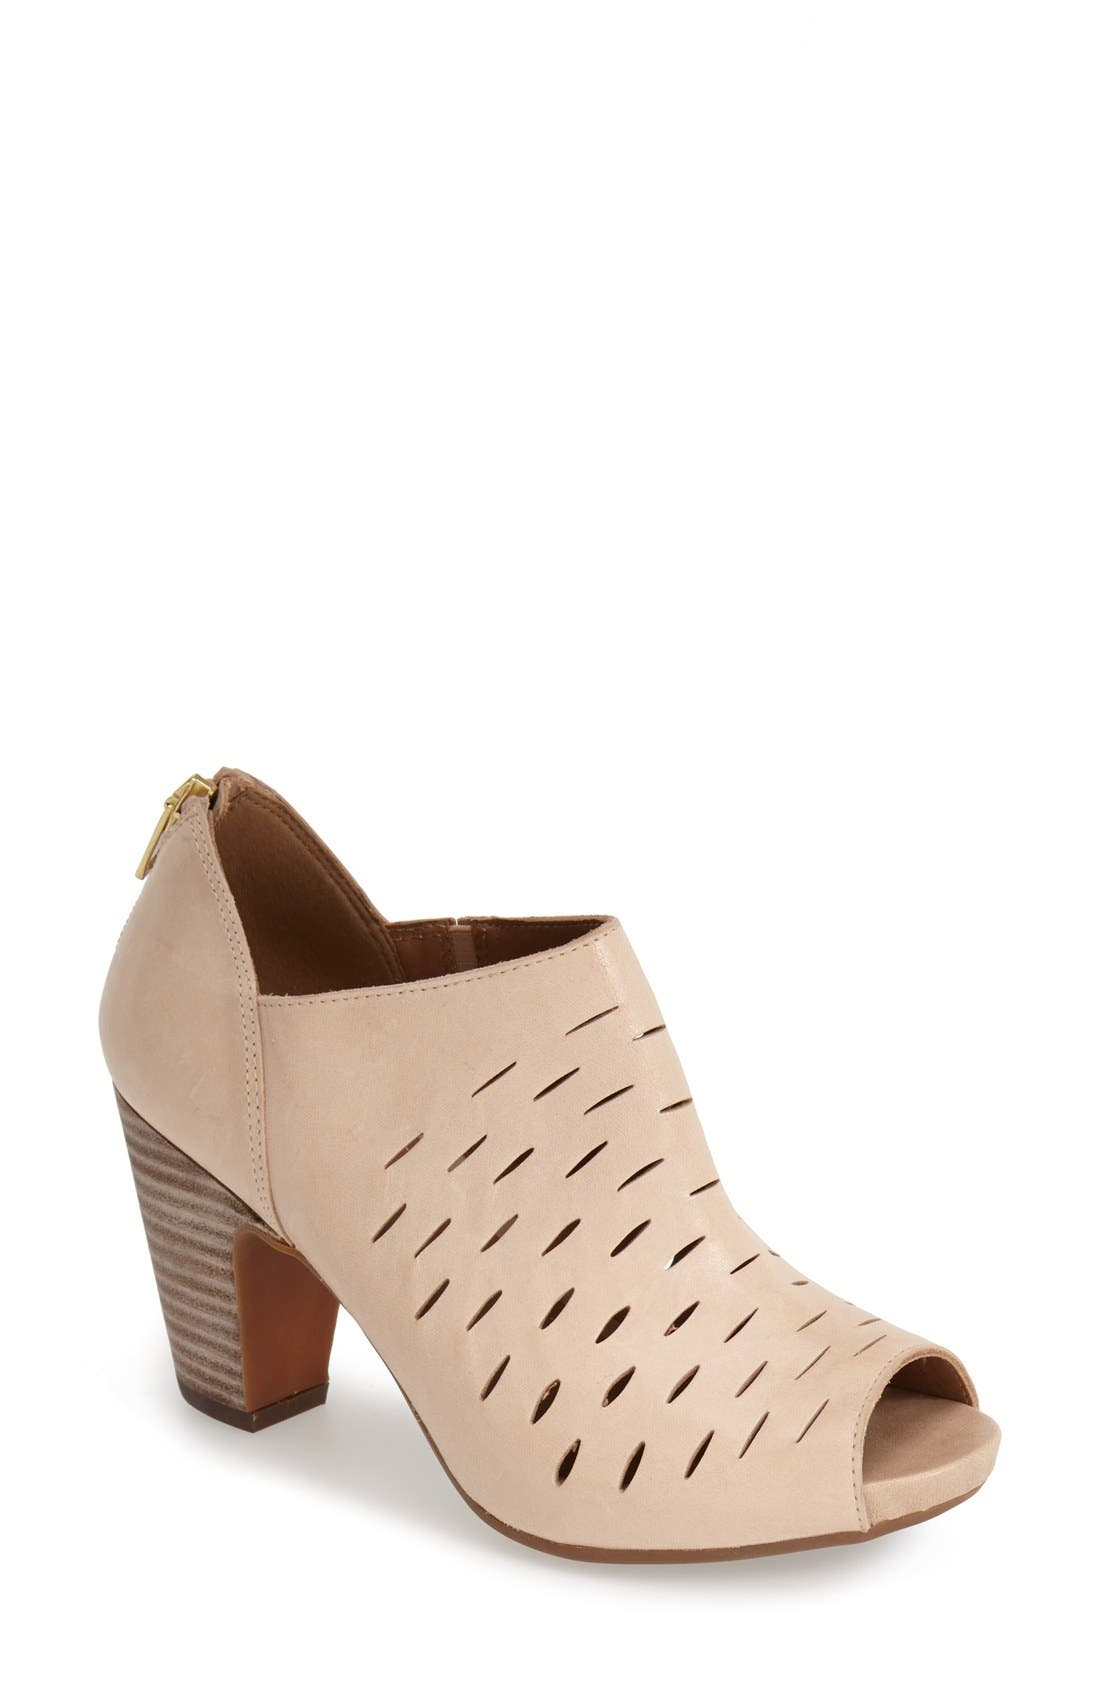 Alternate Image 1 Selected - Clarks® 'Okena Posh' Peep-Toe Leather Sandal (Women)